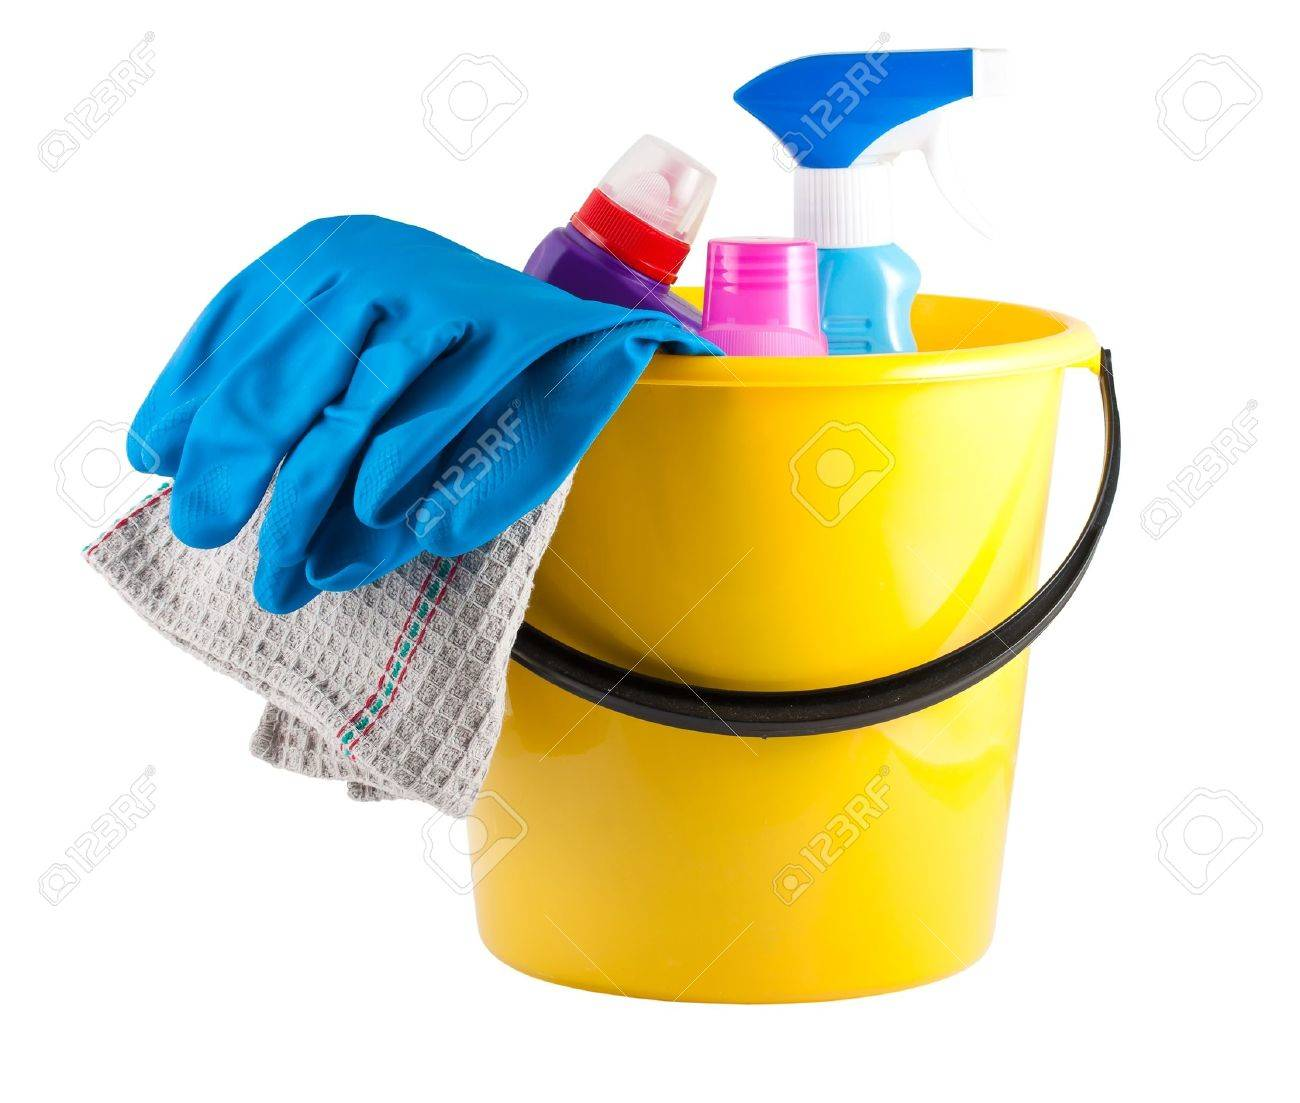 Yellow bucket with cleaning supplies isolated on white background Stock Photo - 12334058